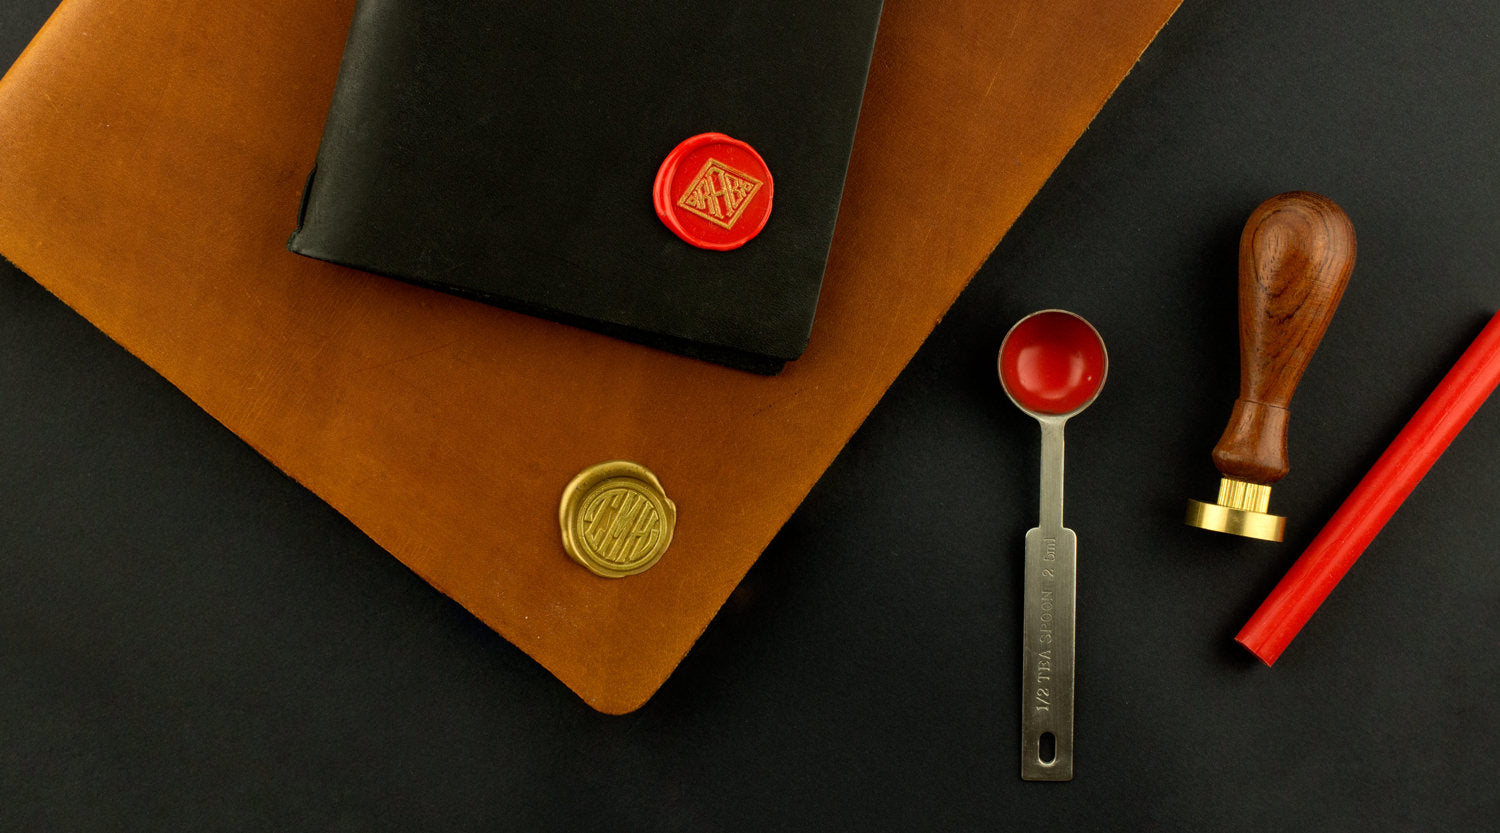 We've created new wax seal monogram stamps to help you express yourself!